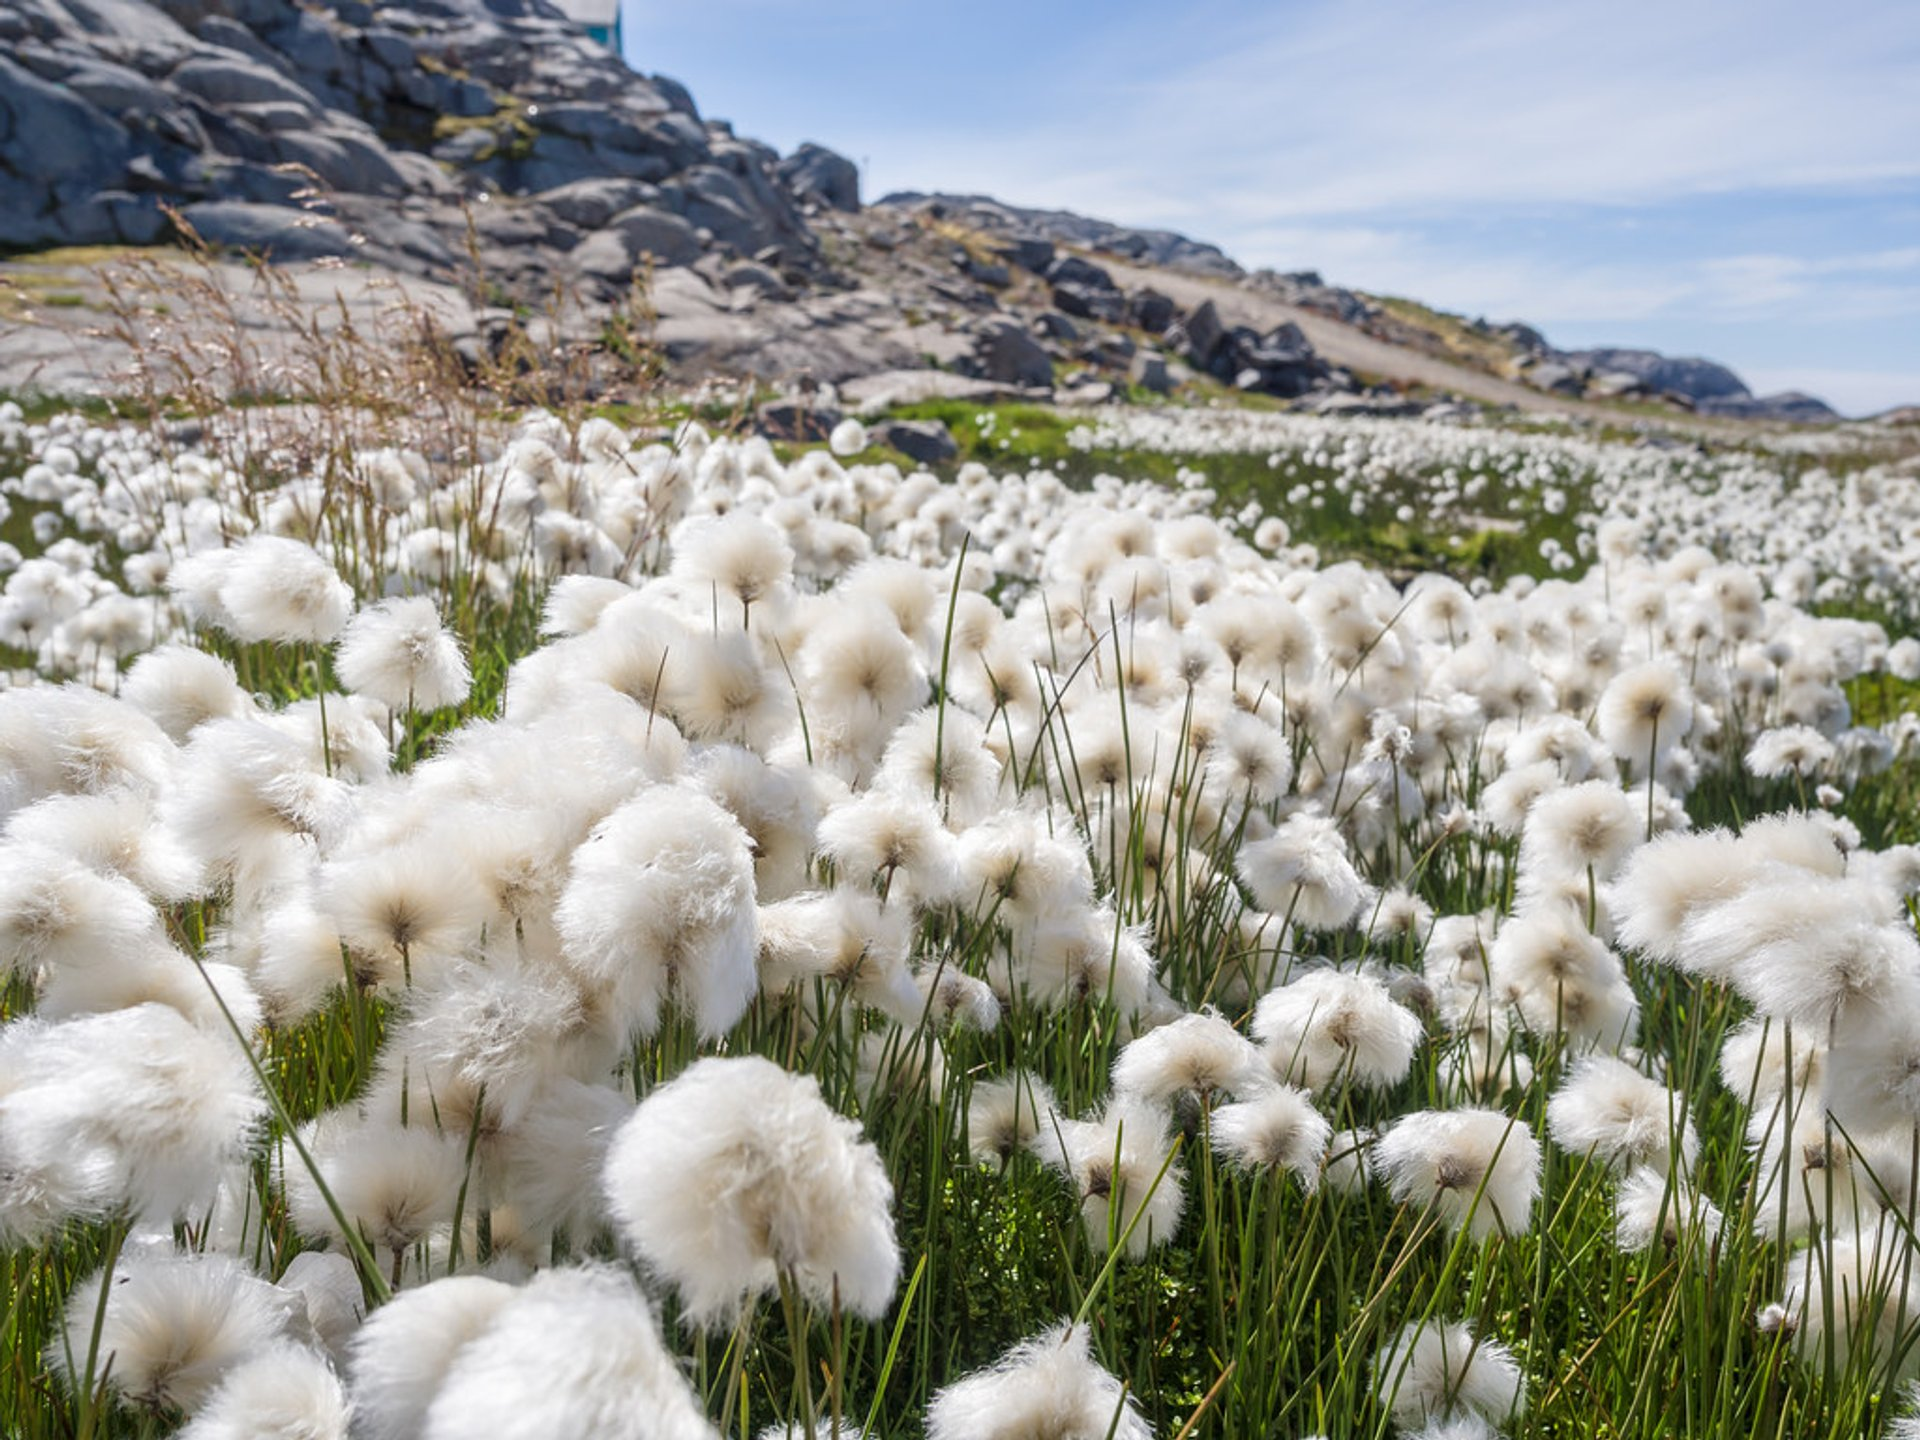 Cotton grass in Kulusuk, Greenland 2019